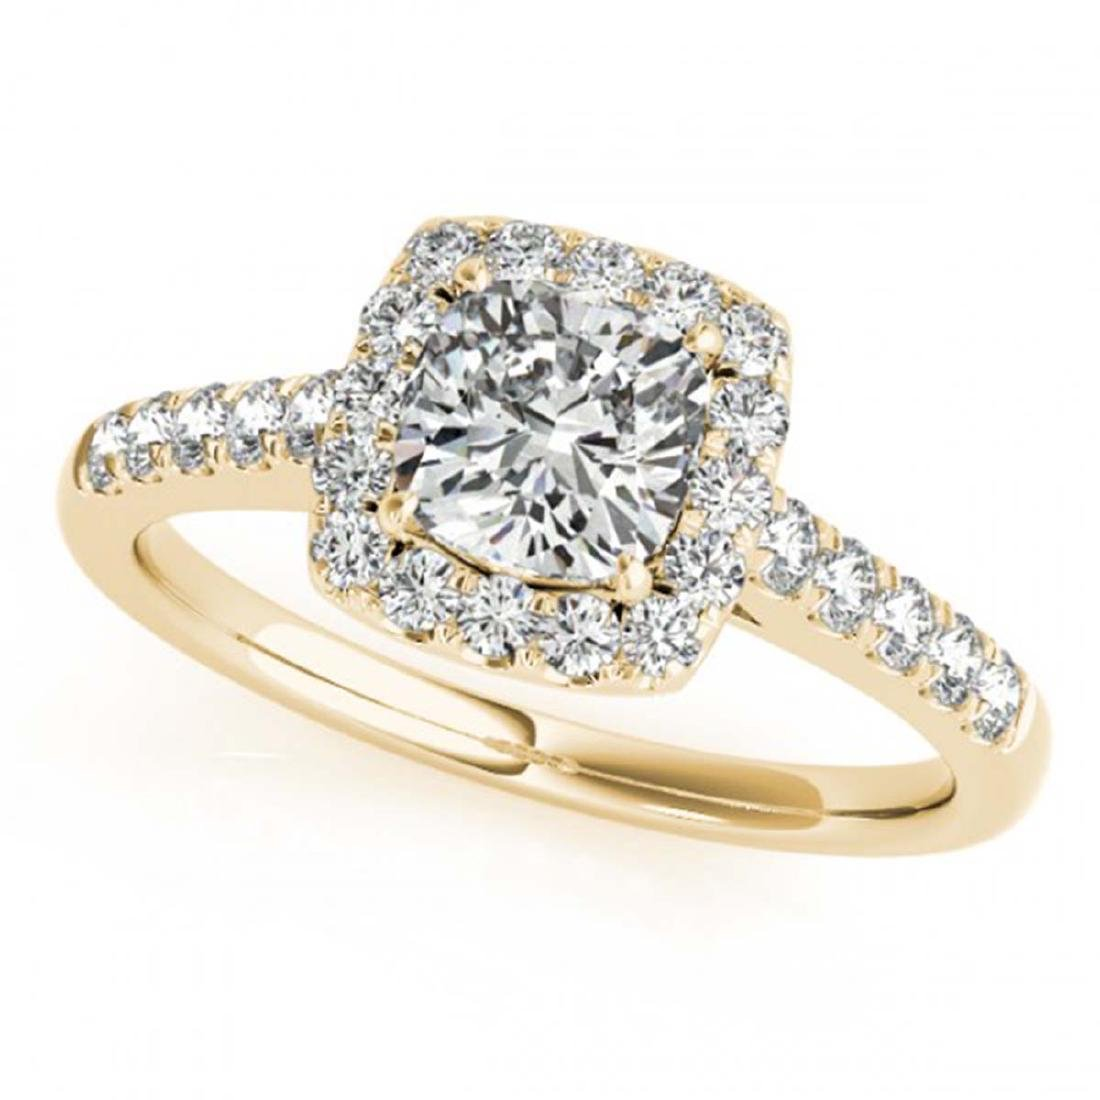 1.16 CTW VS/SI Cushion Diamond Solitaire Halo Ring 14K